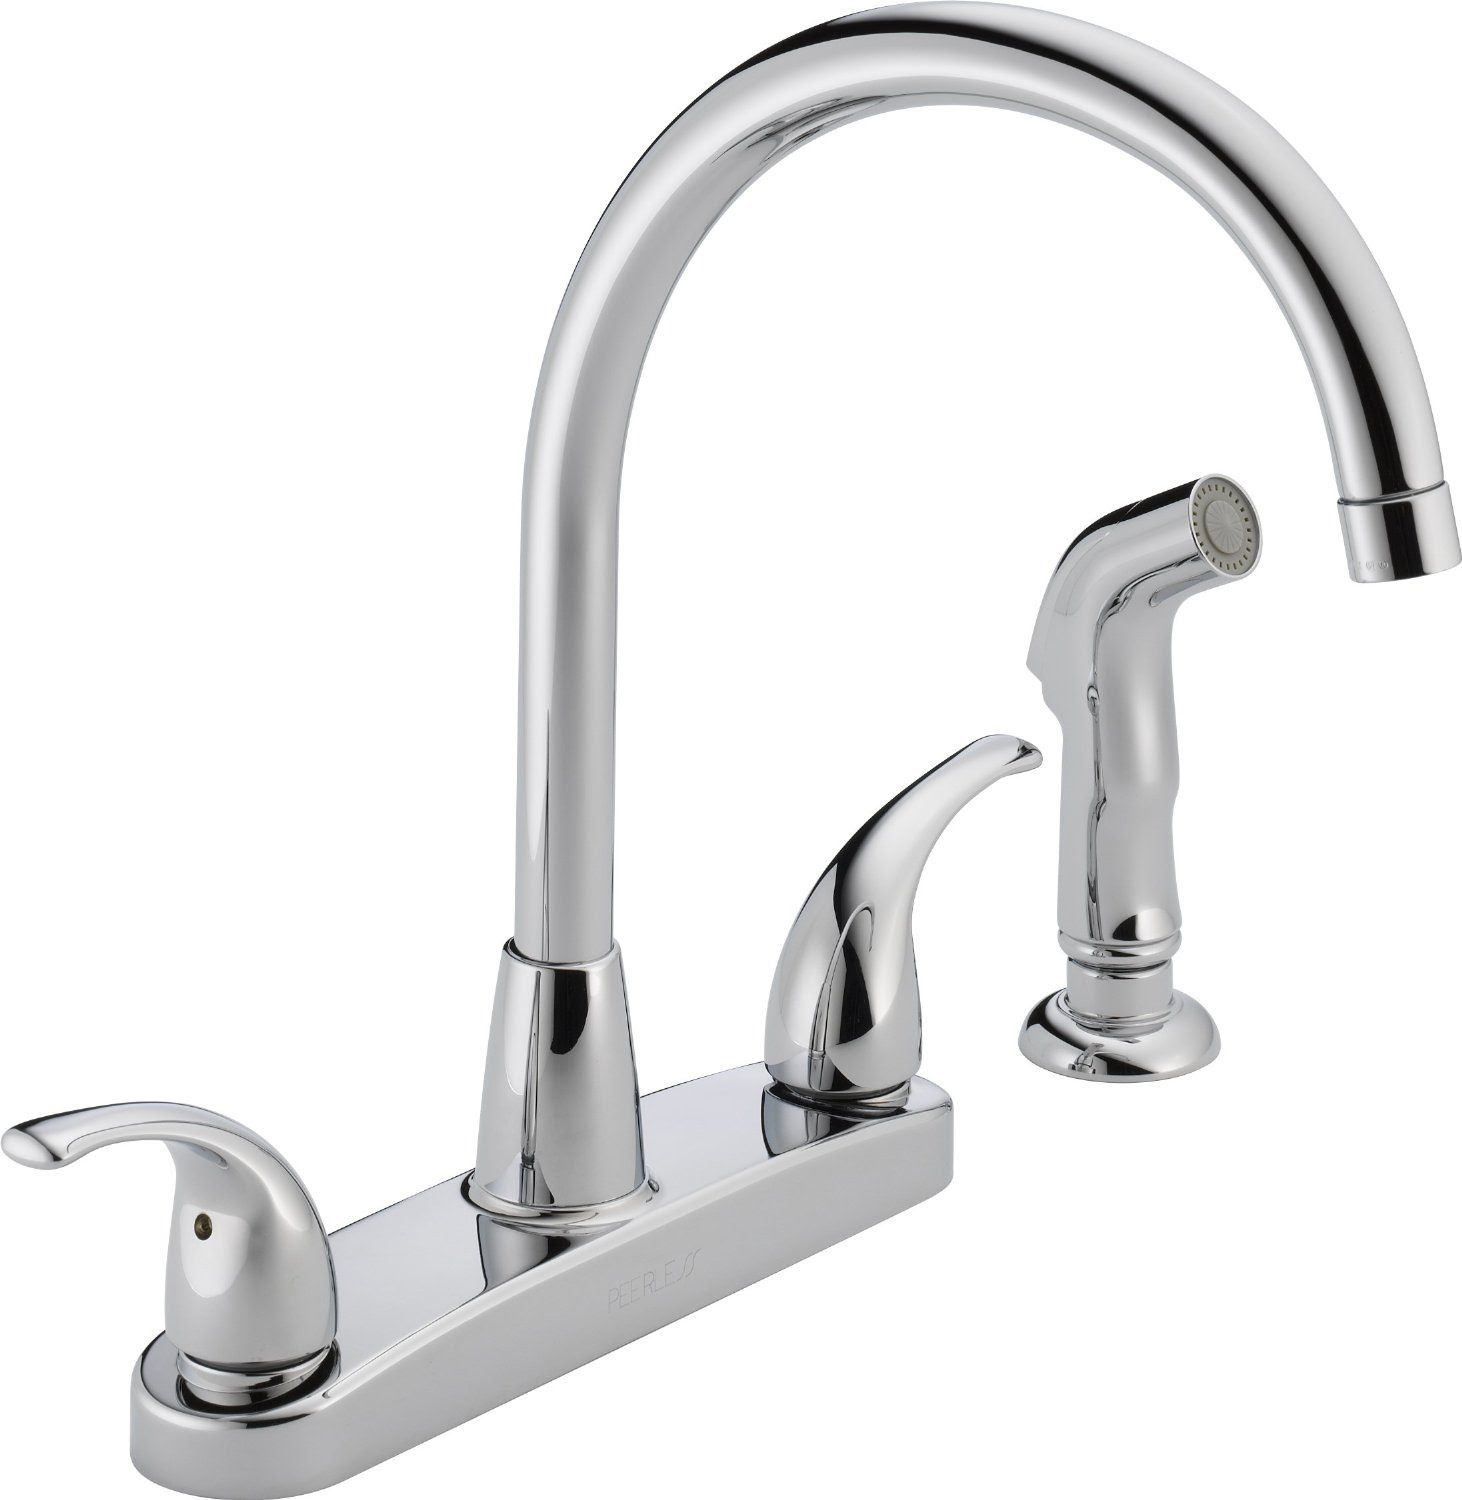 delta kitchen faucet handle replacement classic single pegasus ...